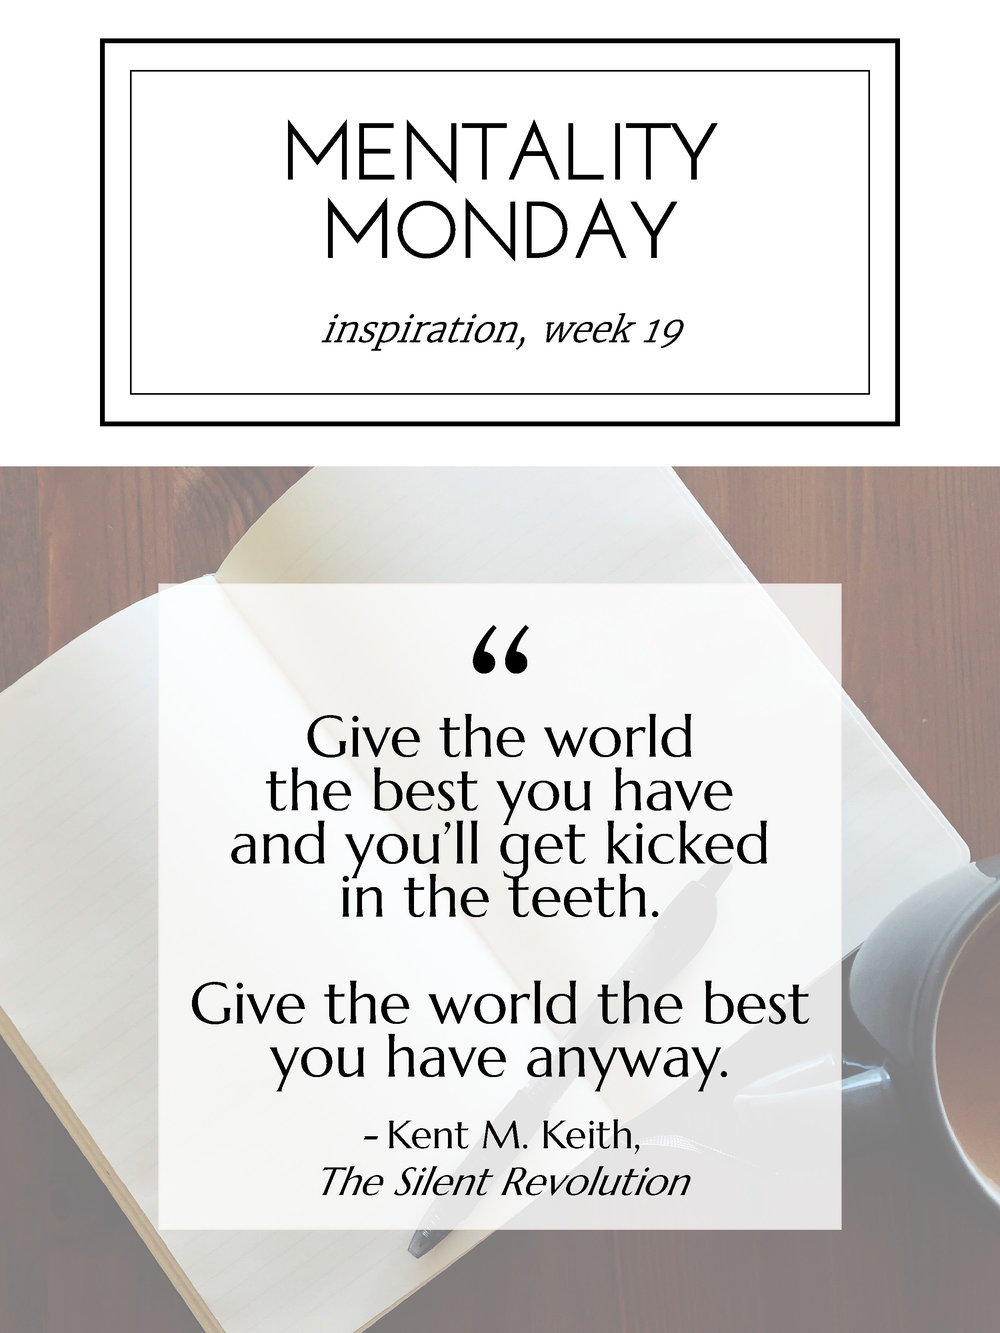 """Mentality Monday 19: """"Give the world the best you have and you'll get kicked in the teeth. Give the world the best you have anyway."""" - Kent M. Keith"""